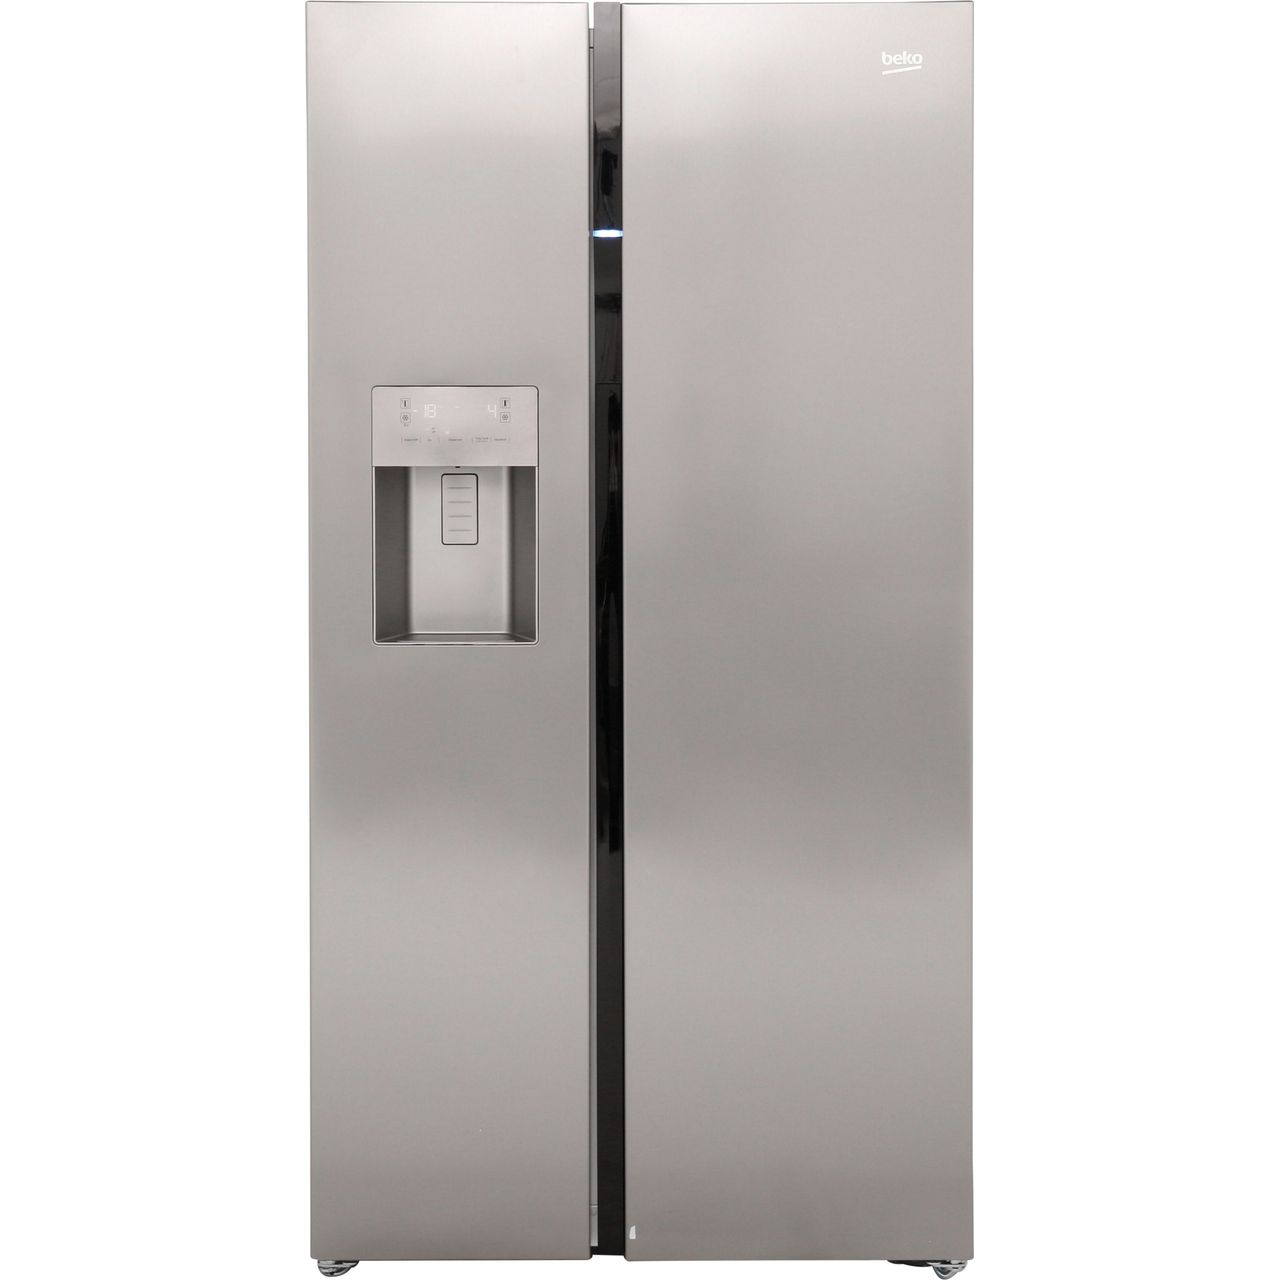 beko asgn542x american fridge freezer stainless steel. Black Bedroom Furniture Sets. Home Design Ideas